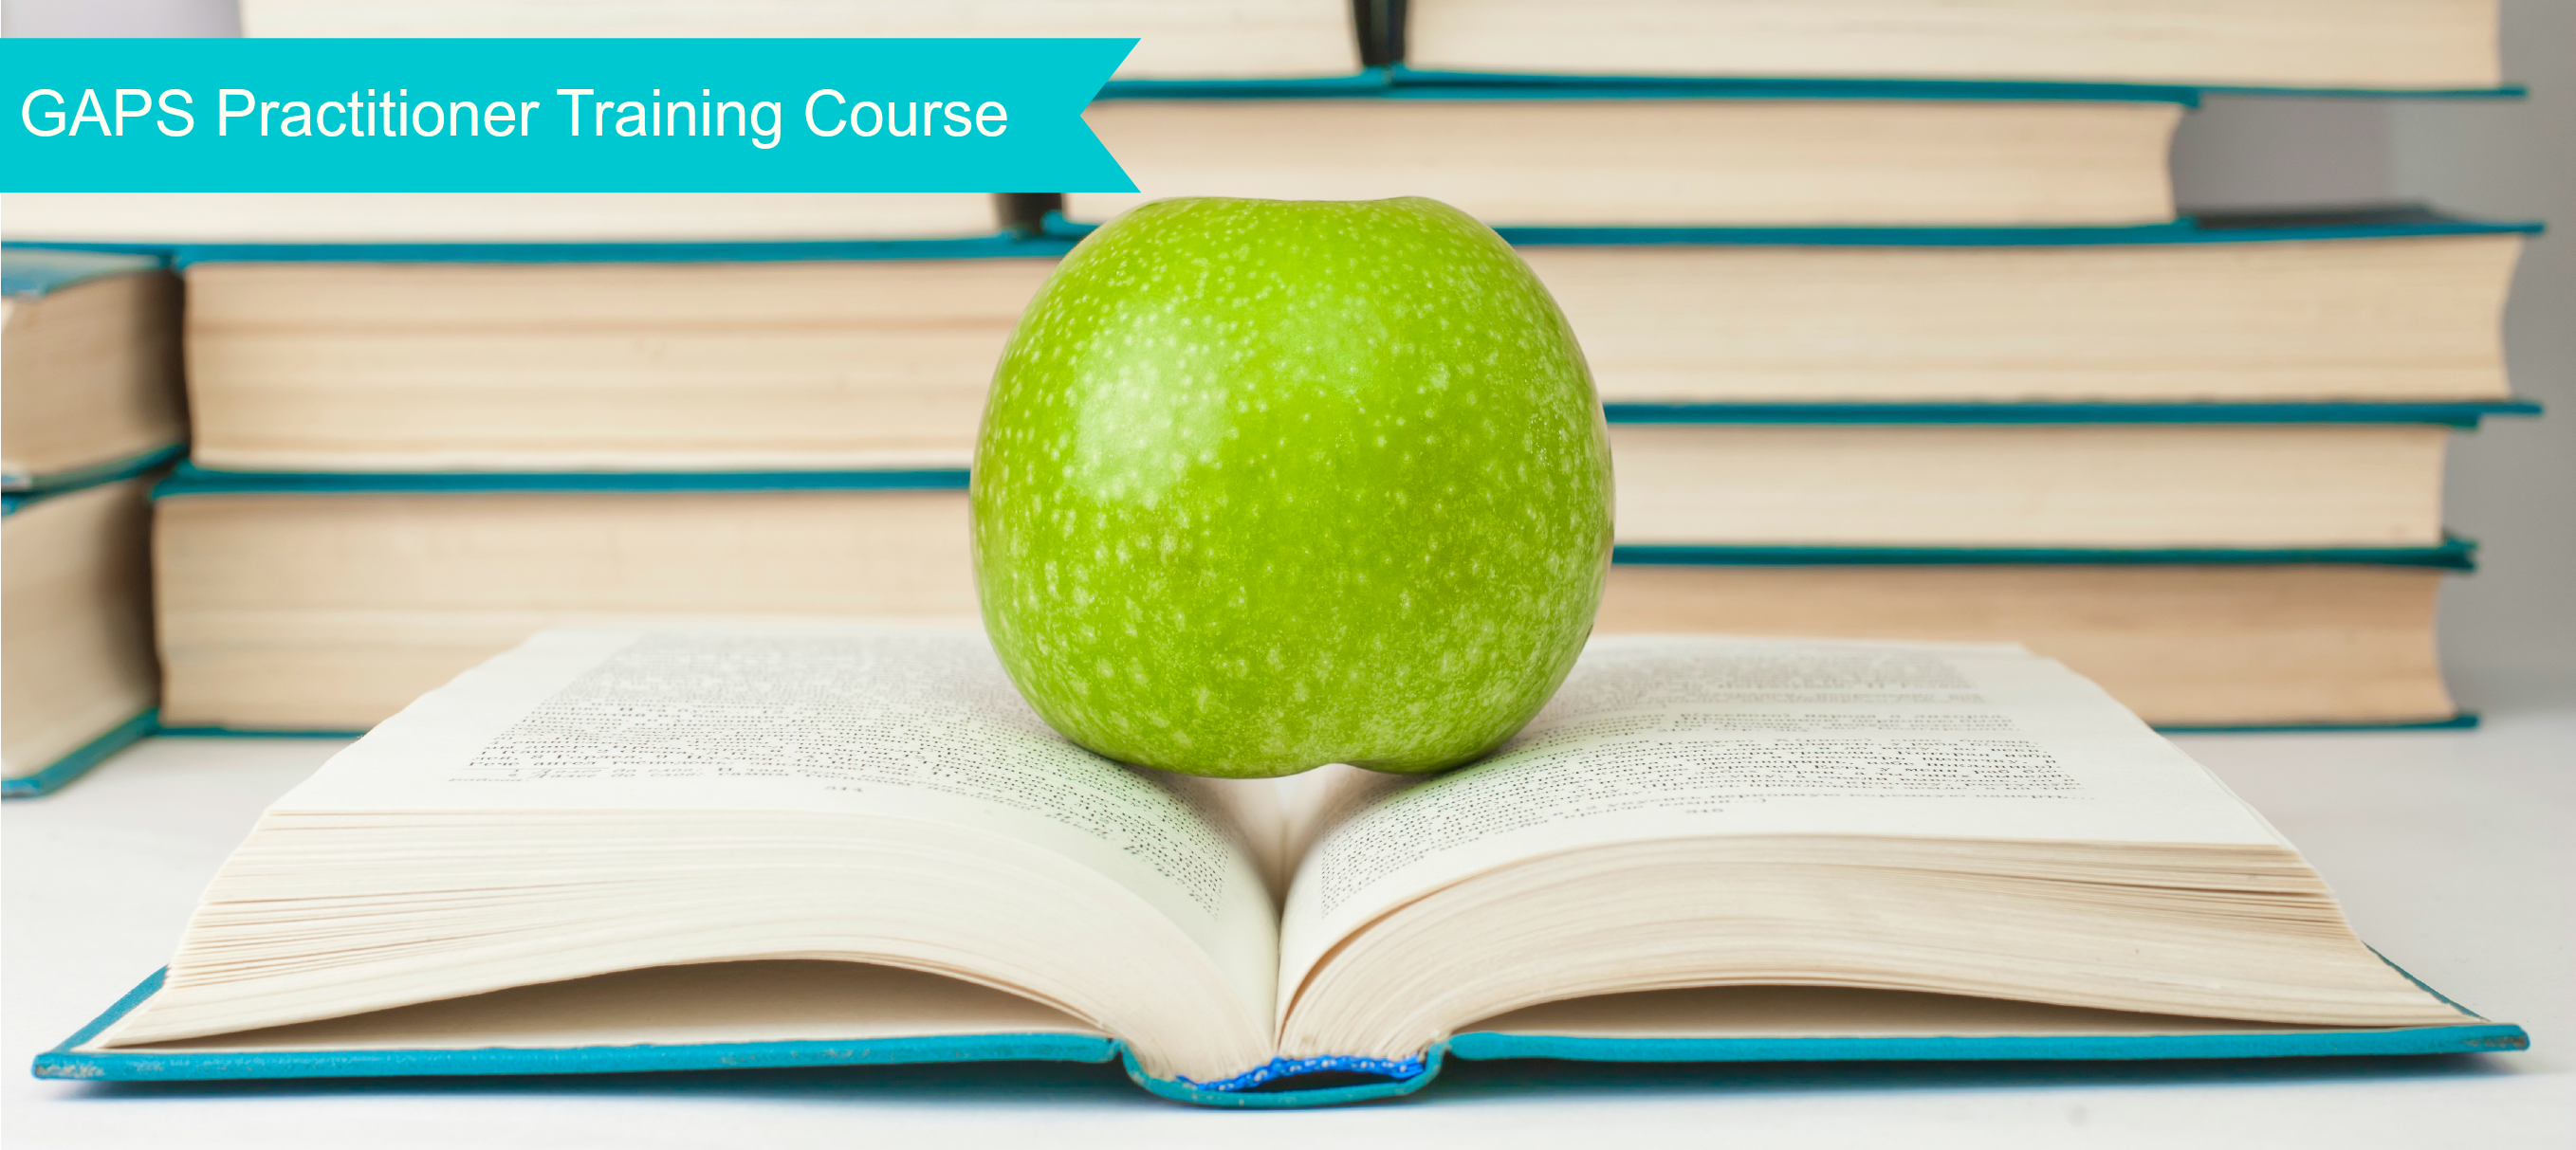 apple-on-books-gaps-training-course-subscription.png